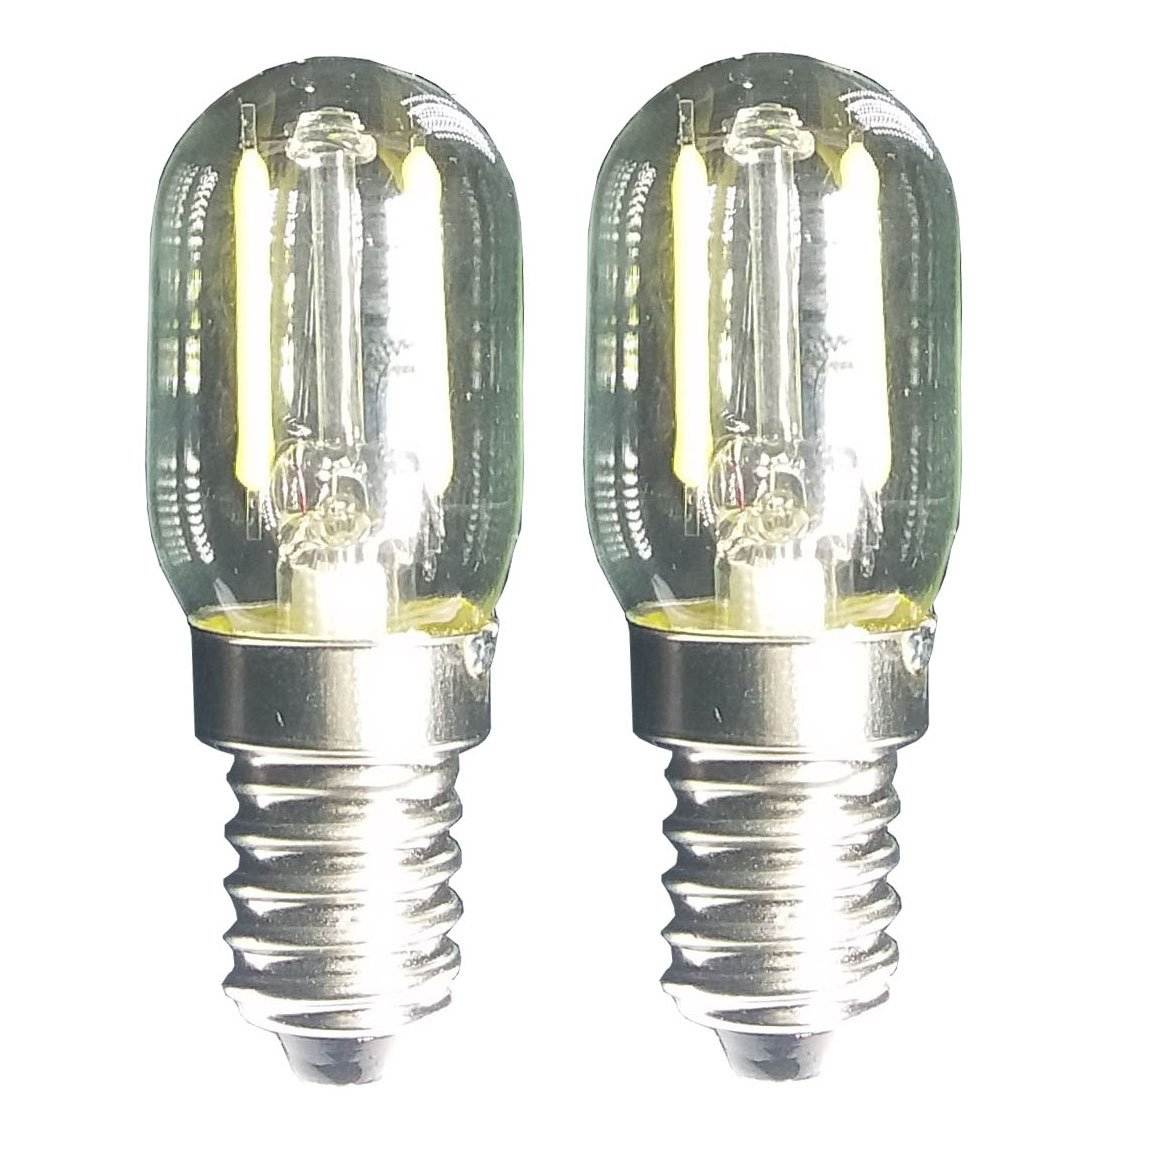 Led Filament Light 1.5w T22 E17 Base Microwave Bulb 125v 20w Equivalent Incandescent Lamps for Refrigerator Microwave Oven Candelabra Lava Desk Light (2 Pack,E17,5000K Daylight)